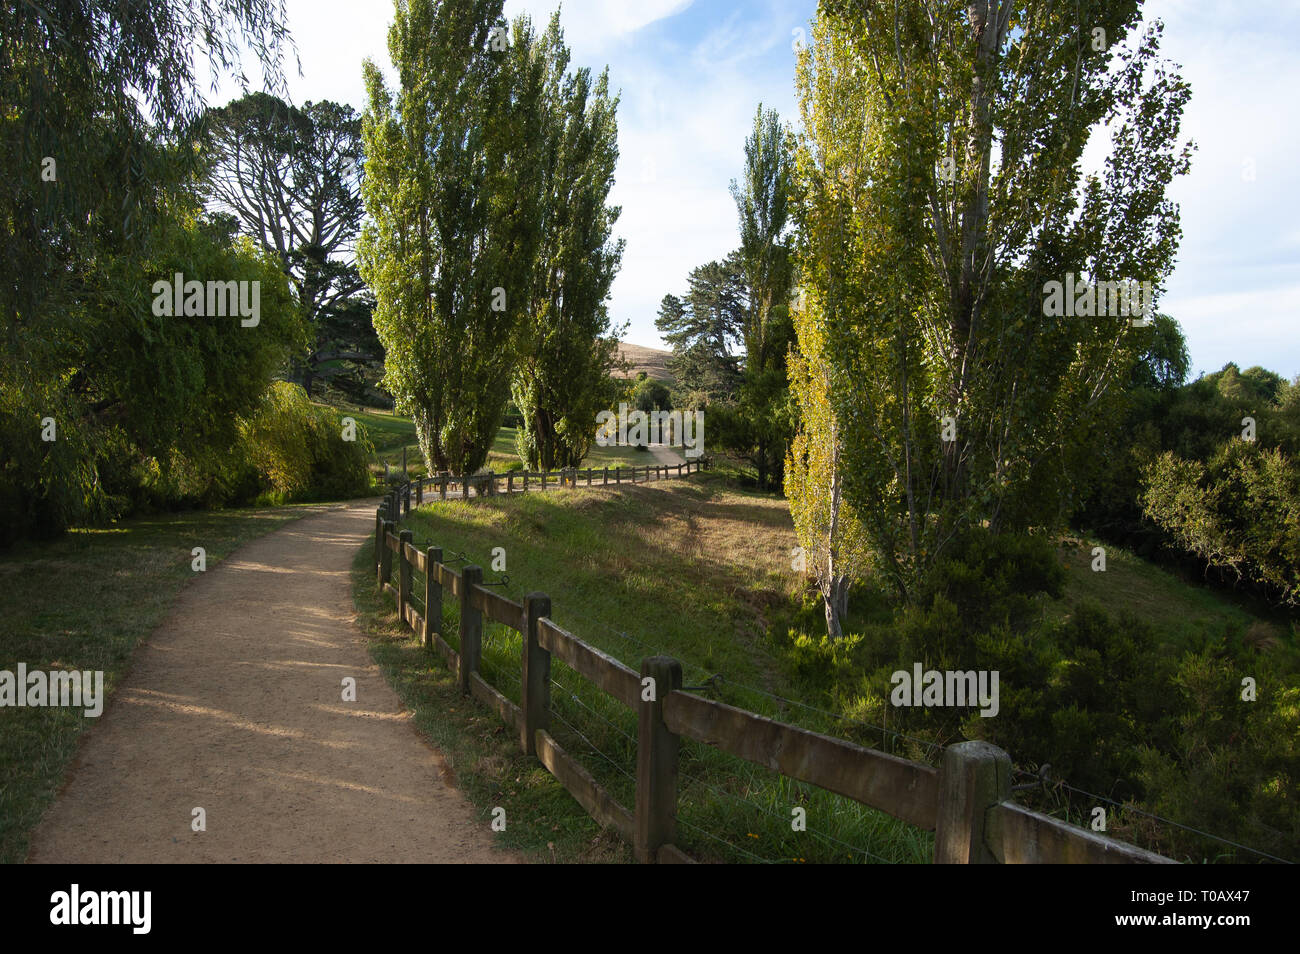 Fence-lined path through New Zealand - Stock Image